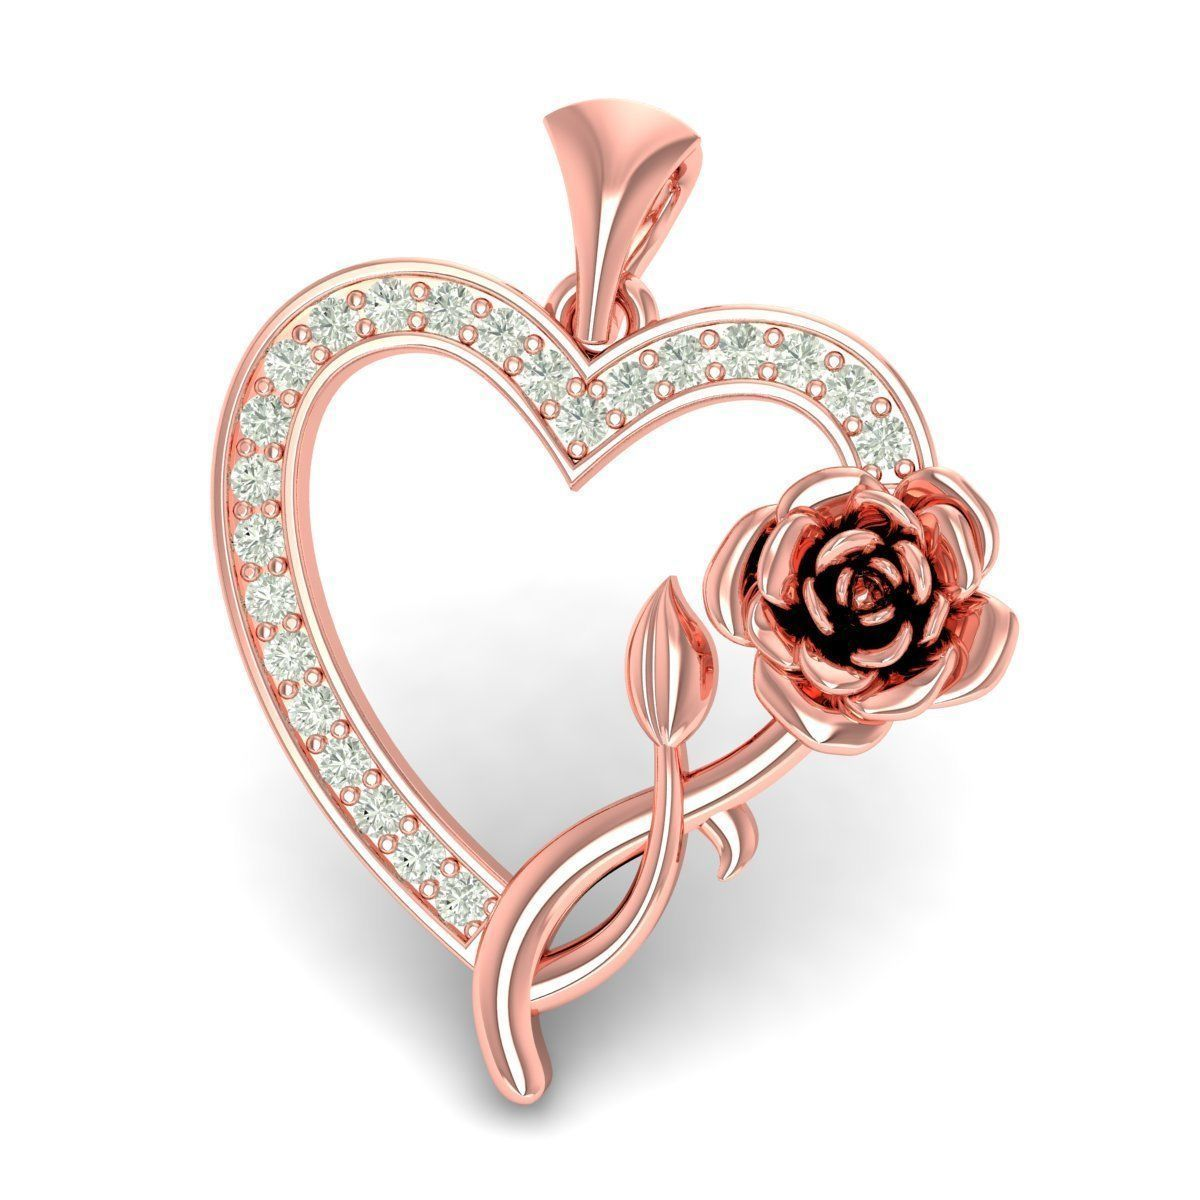 The New Love Pendent